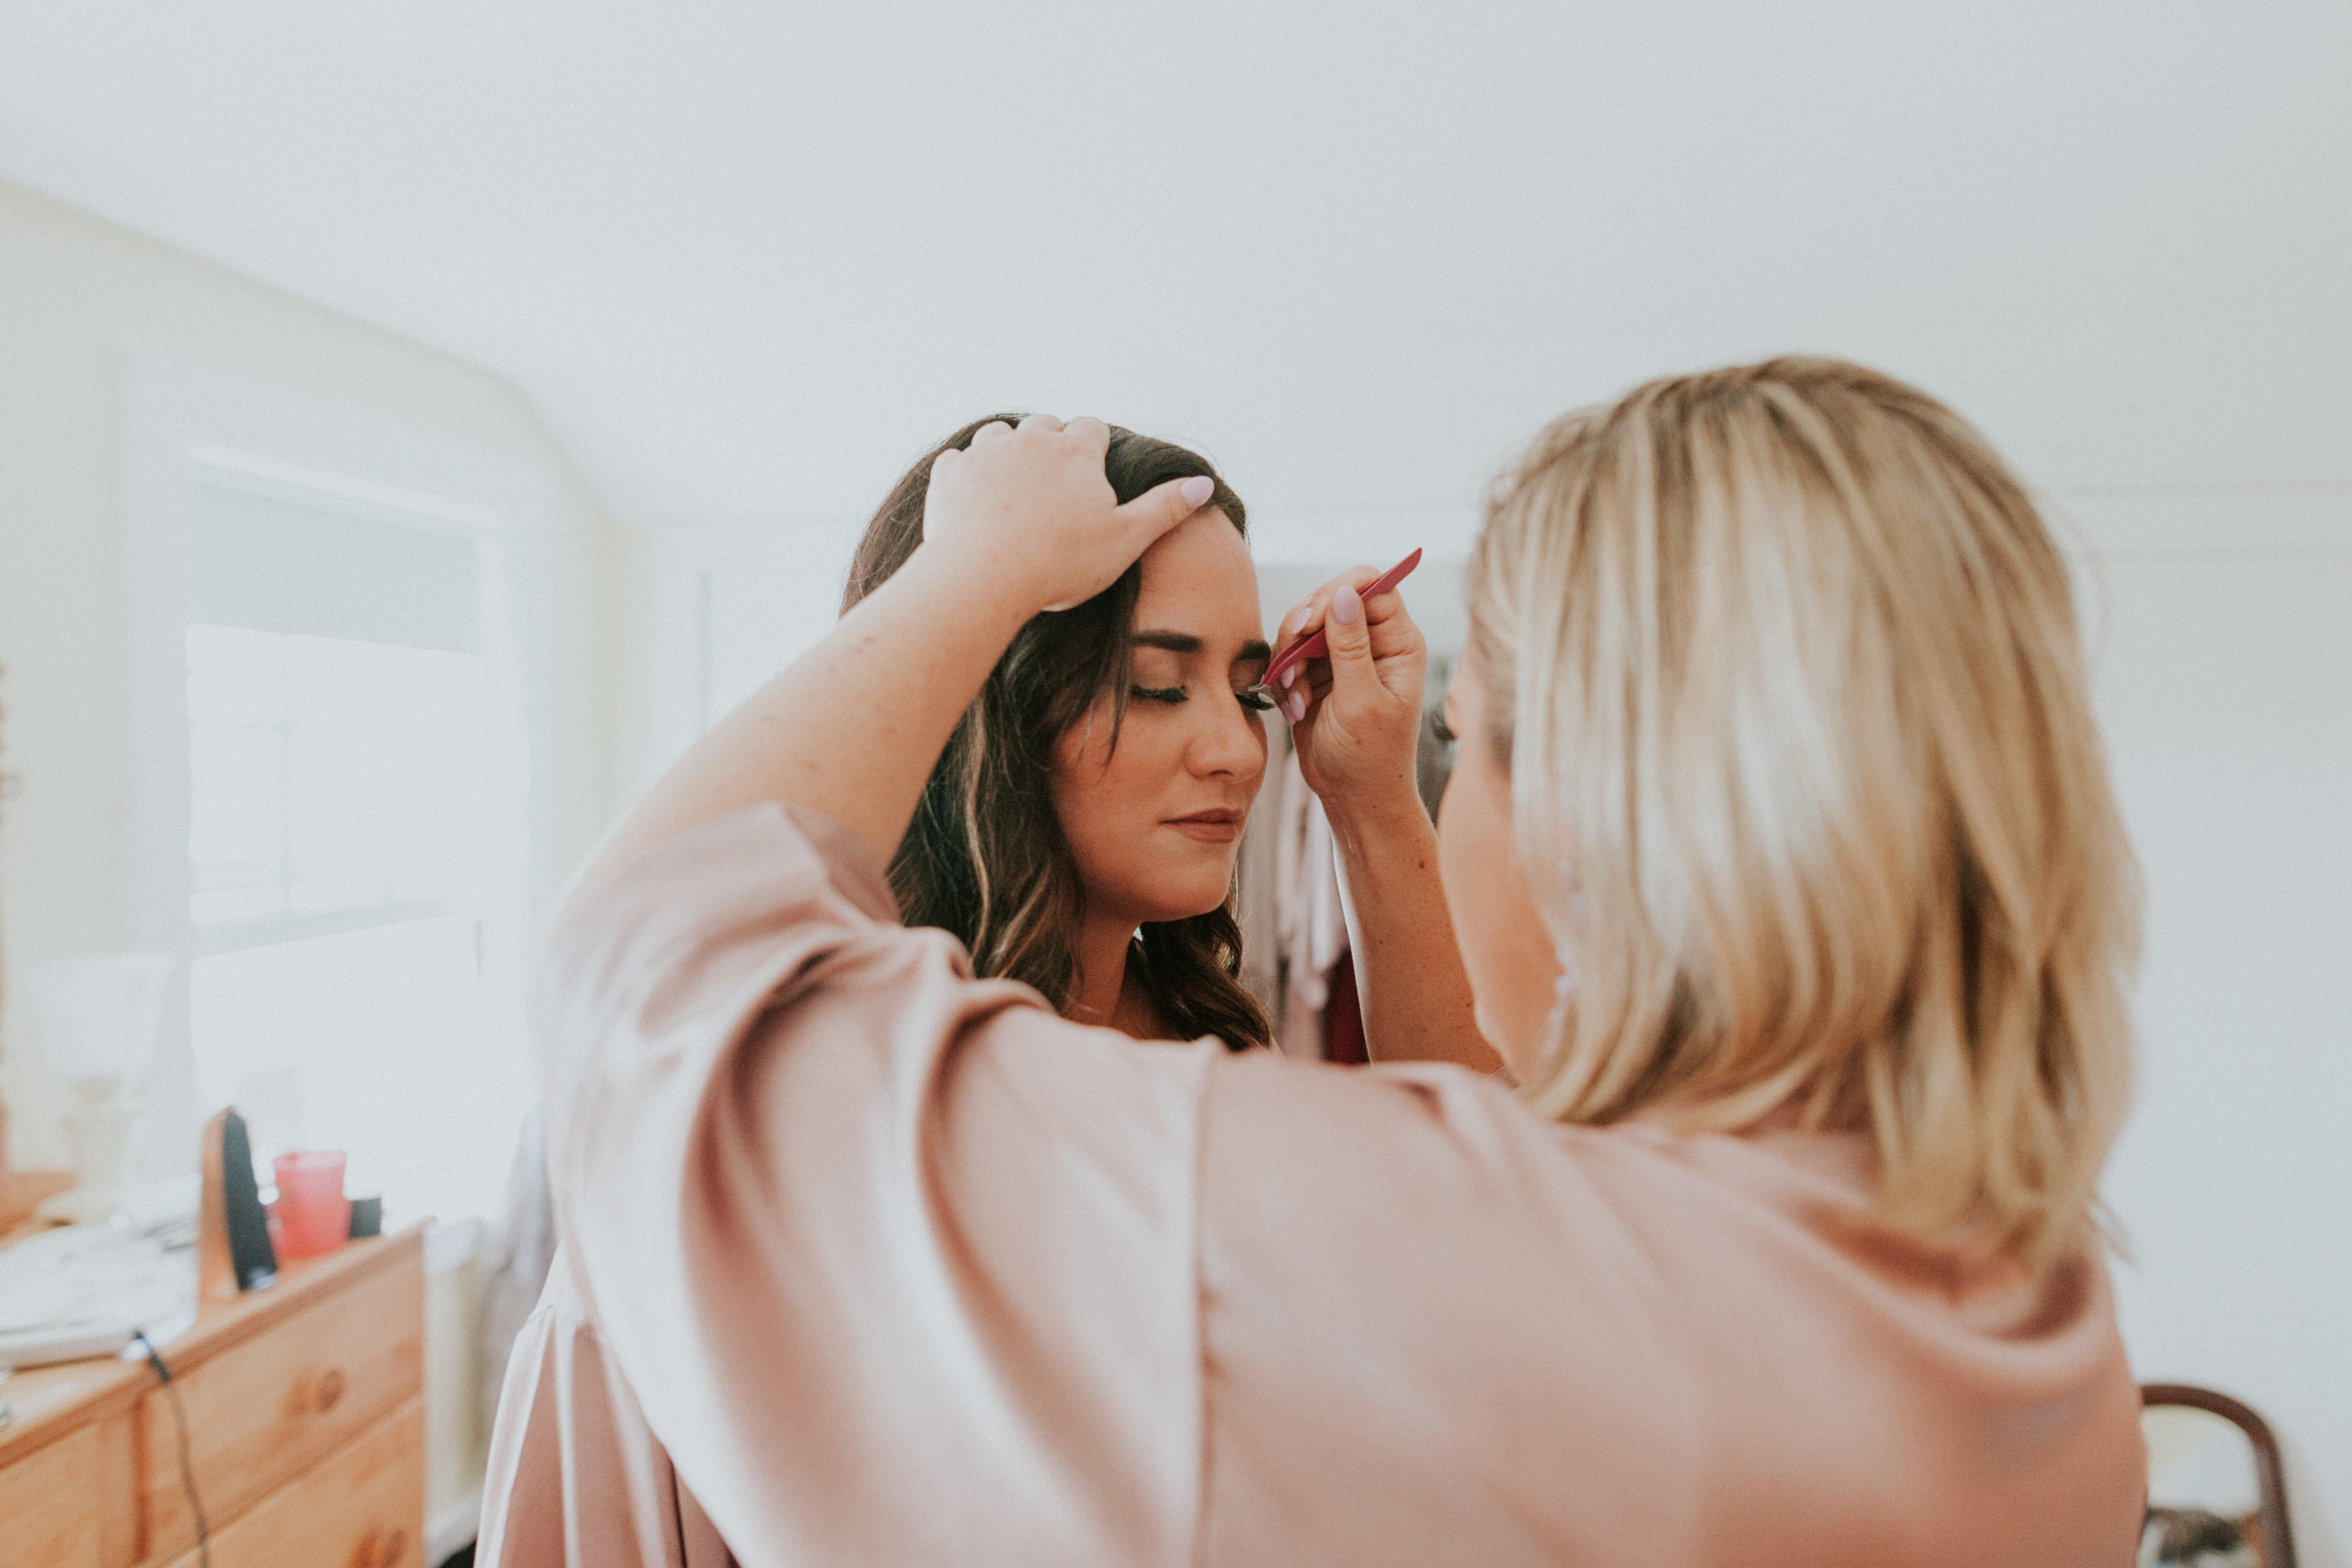 bridesmaids, make up, bridesmaids putting on falsies, bridesmaids in pink robes